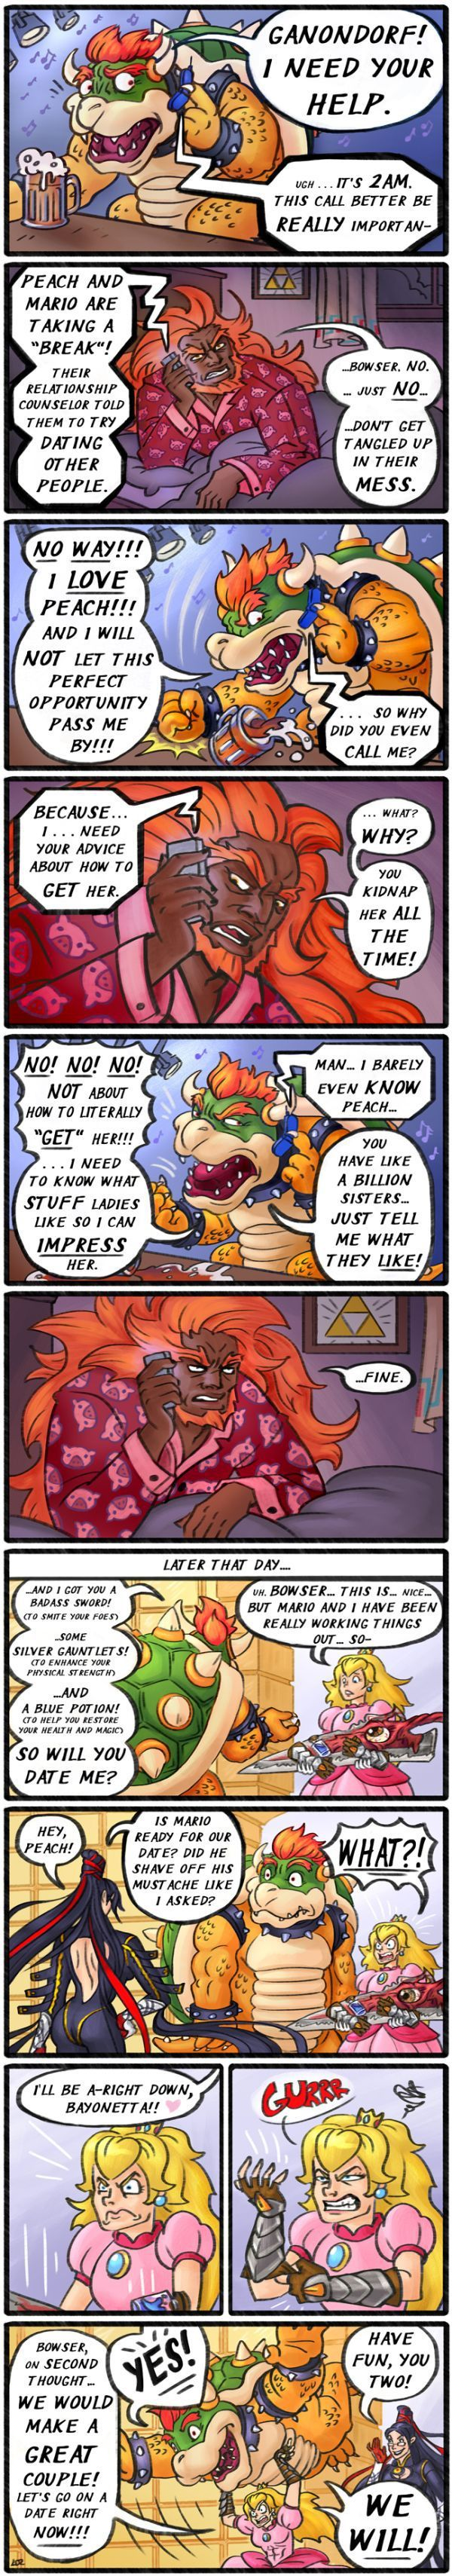 Bowser Calls Ganondorf for Help About Dating Princess Peach [Comic] Read more at https://www.geeksaresexy.net/2016/06/12/bowser-calls-ganondorf-for-help-about-dating-princess-peach-comic/#u40ih94XbbdiJrcz.99 <<< is it bad that i totally imagined G-Cash and Big Bow from Big Bad Bosses doing this